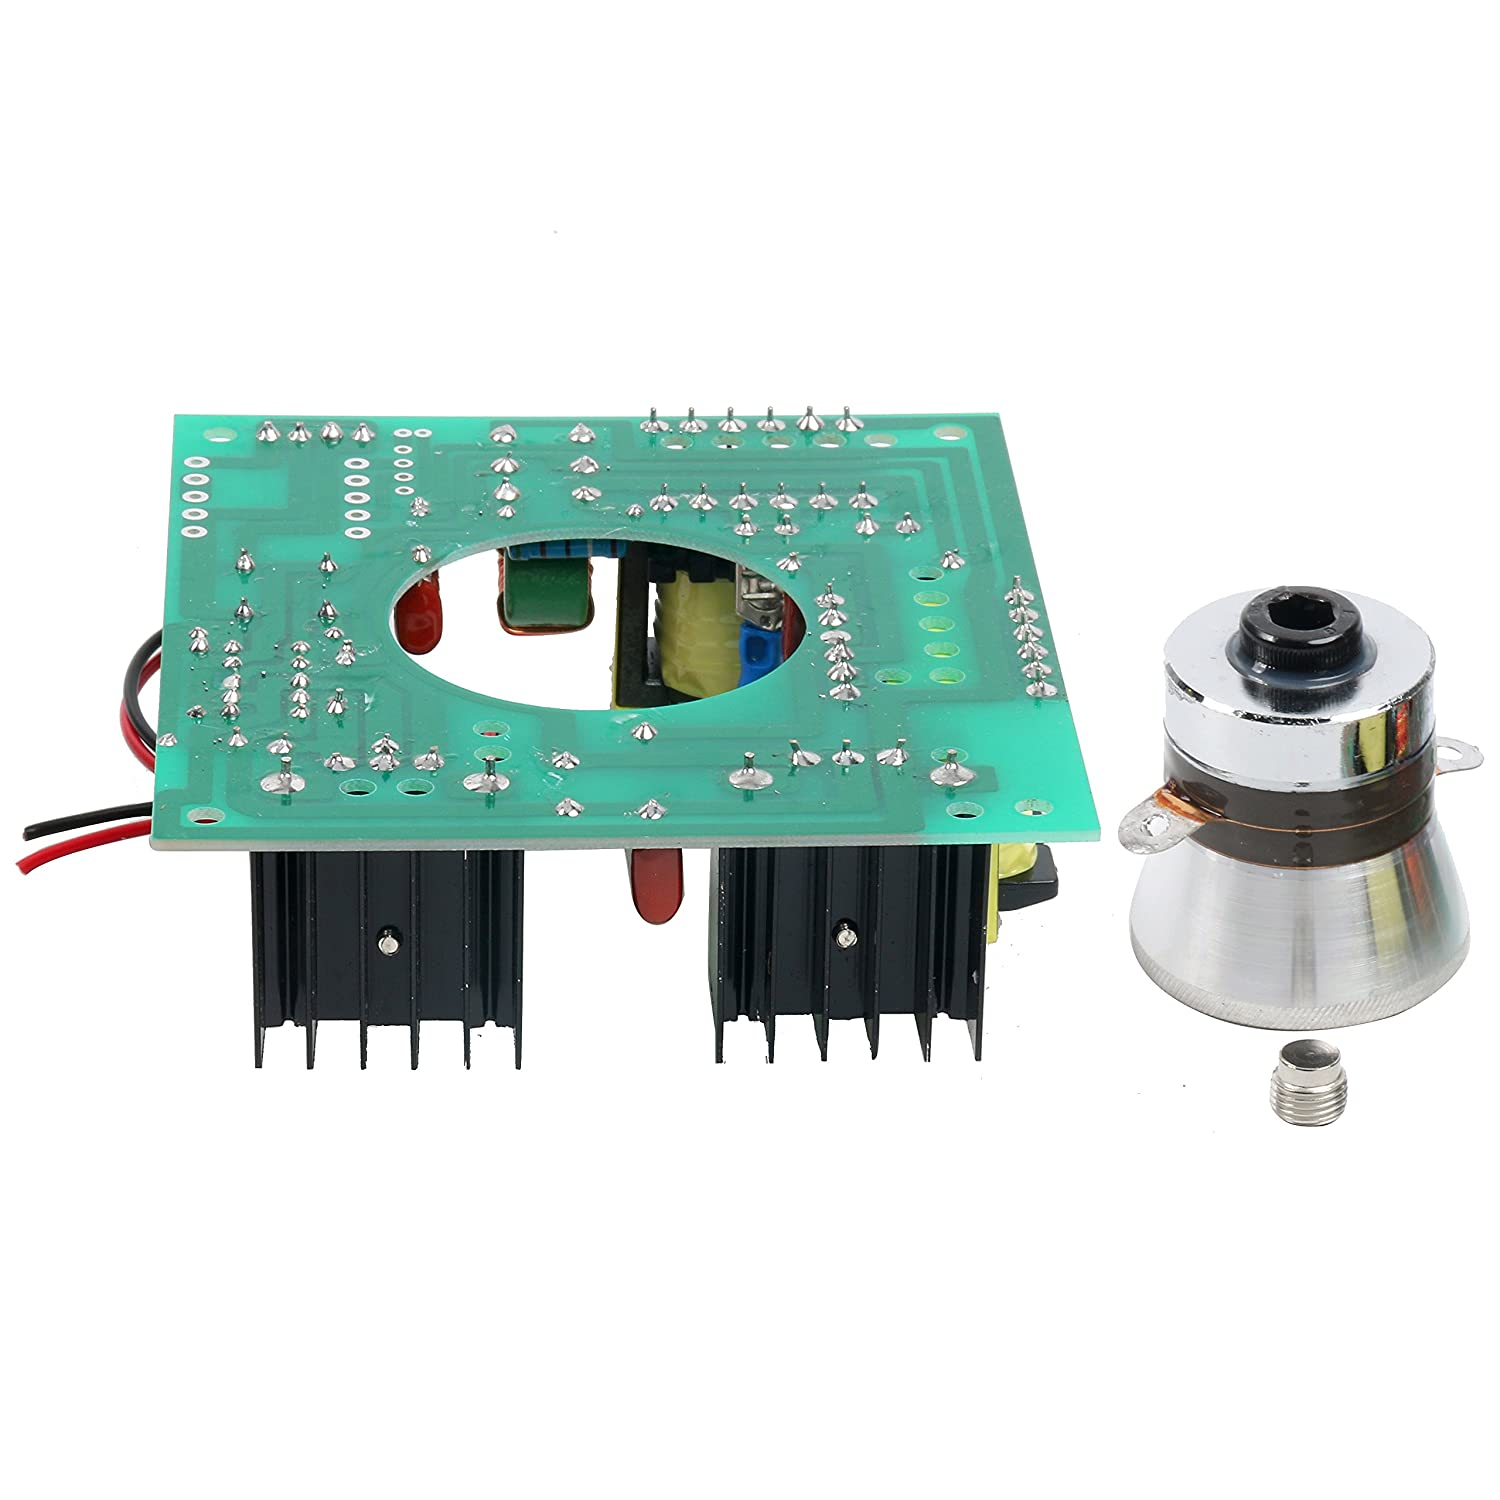 60w 40khz Ultrasonic Cleaning Transducer Cleaner Power Driver Converter Circuit Board Pcb Sensor Buy 110v Ac Industrial Scientific